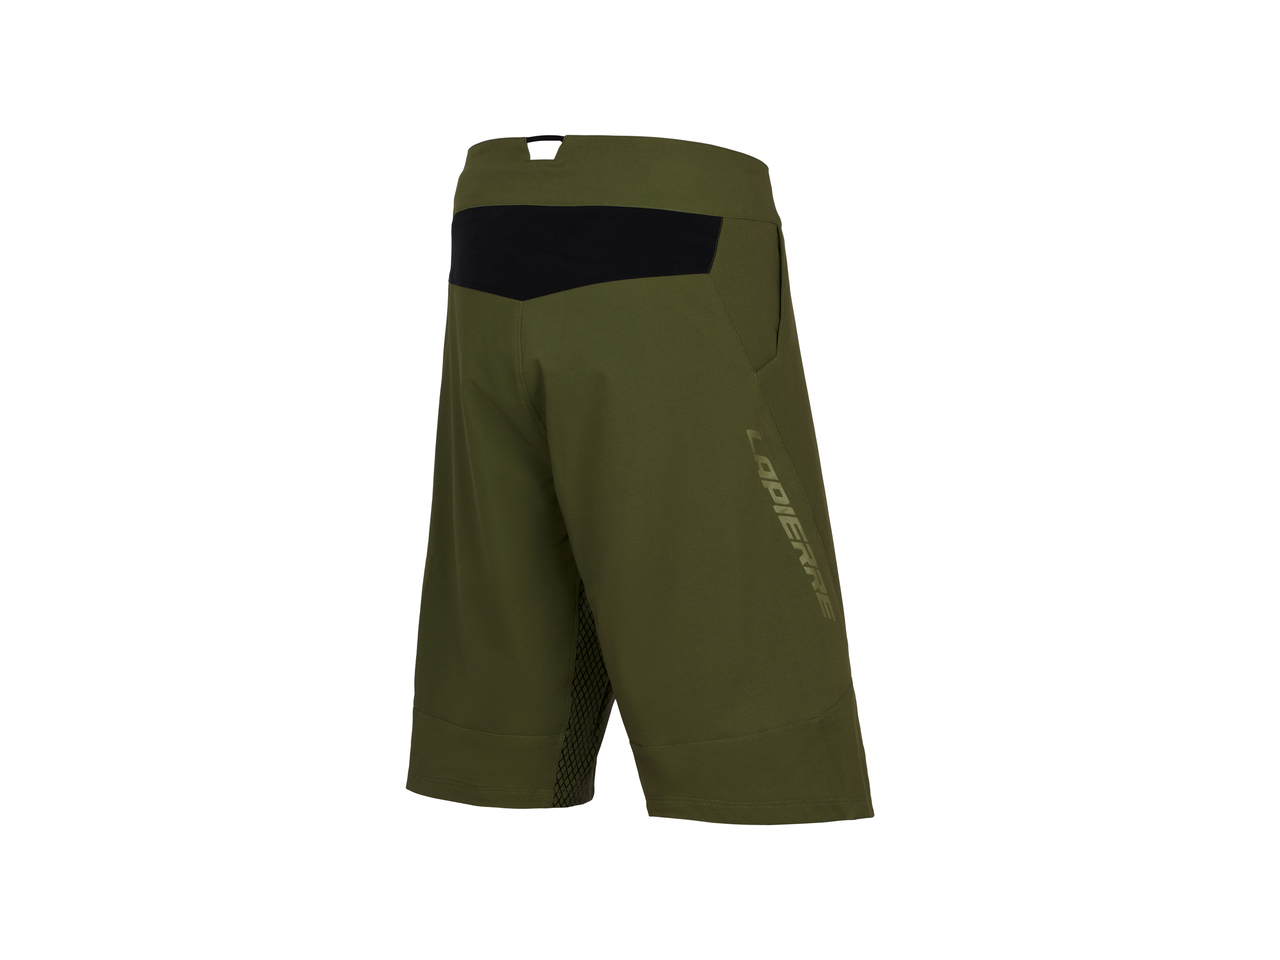 Lapierre Ultimate Fort William MTB shorts - back